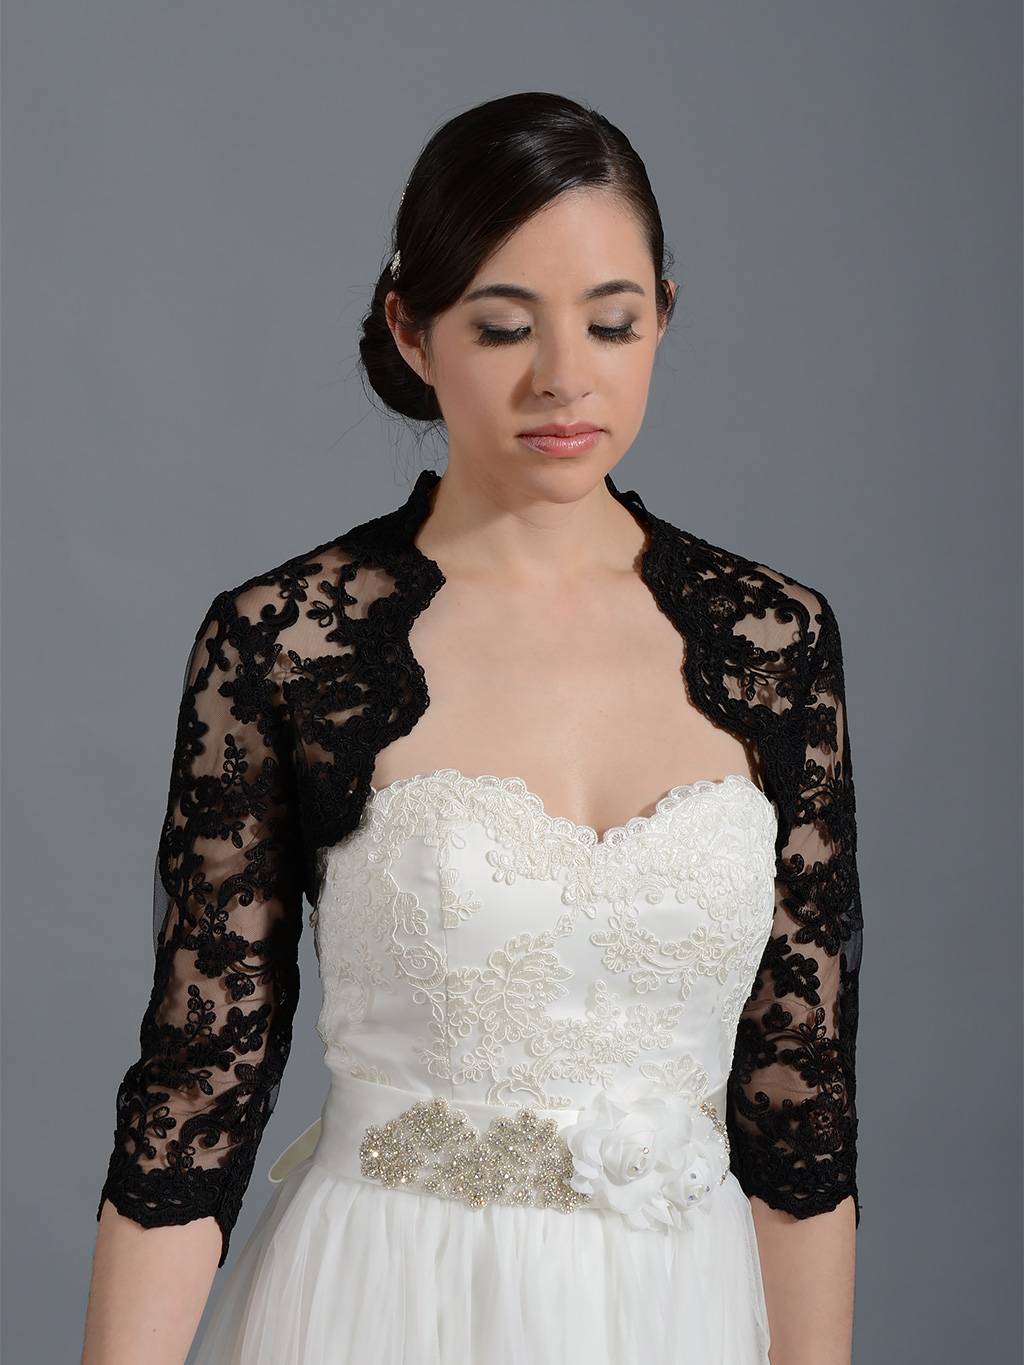 Lace Bolero Wedding | Bolero Jacket | Wedding Bolero